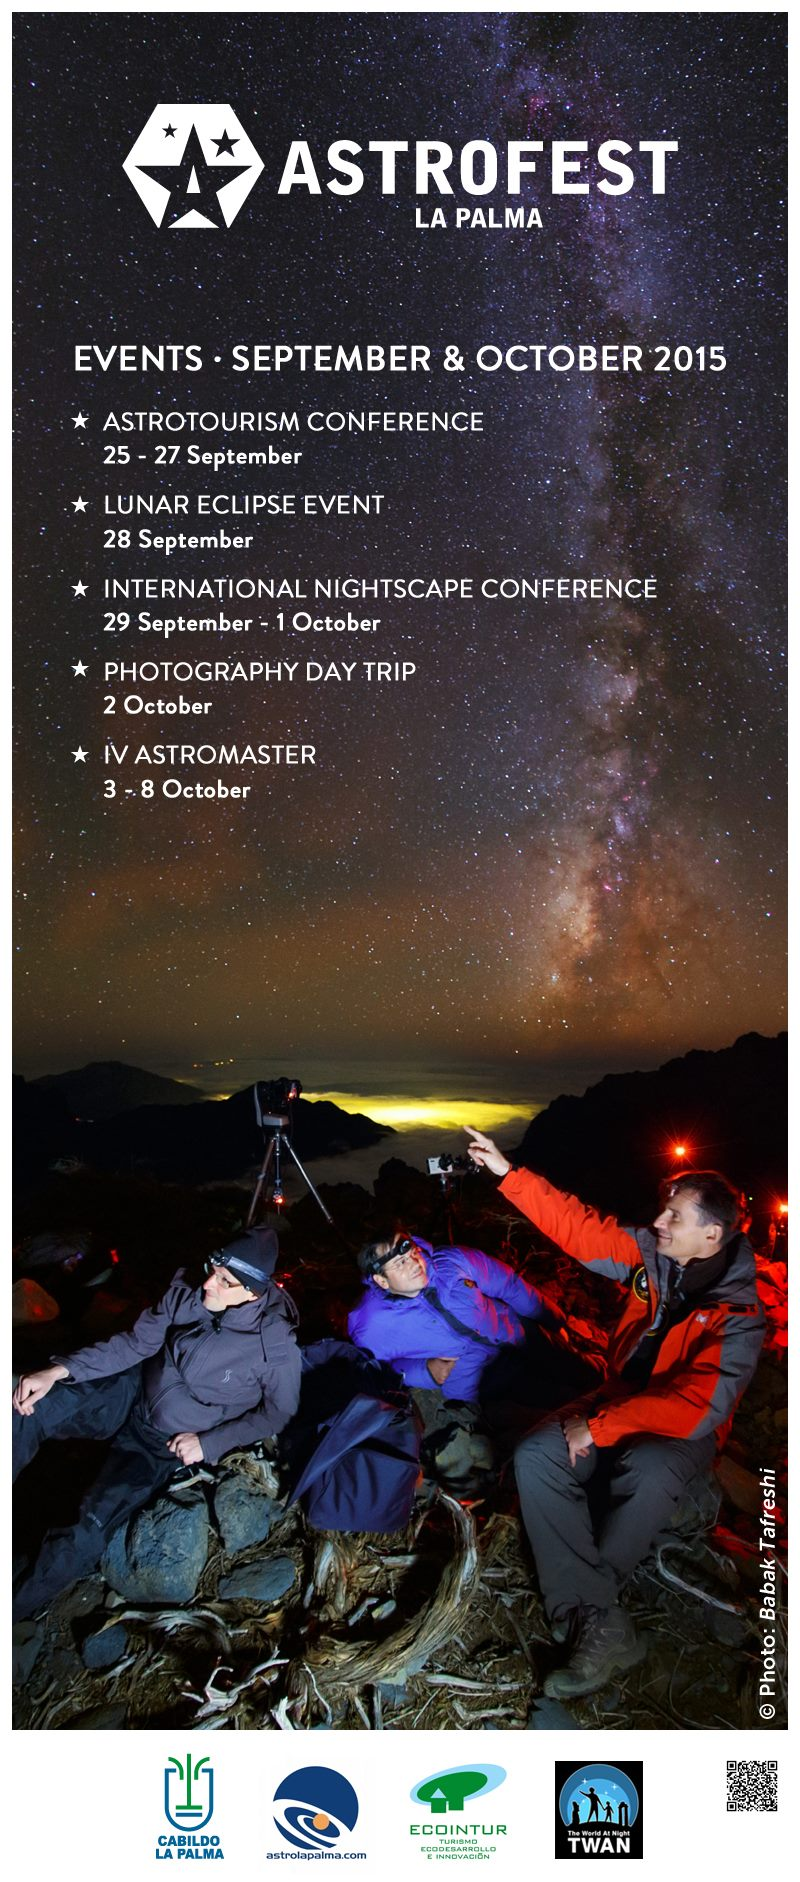 Astrofest La Palma September-October 2015